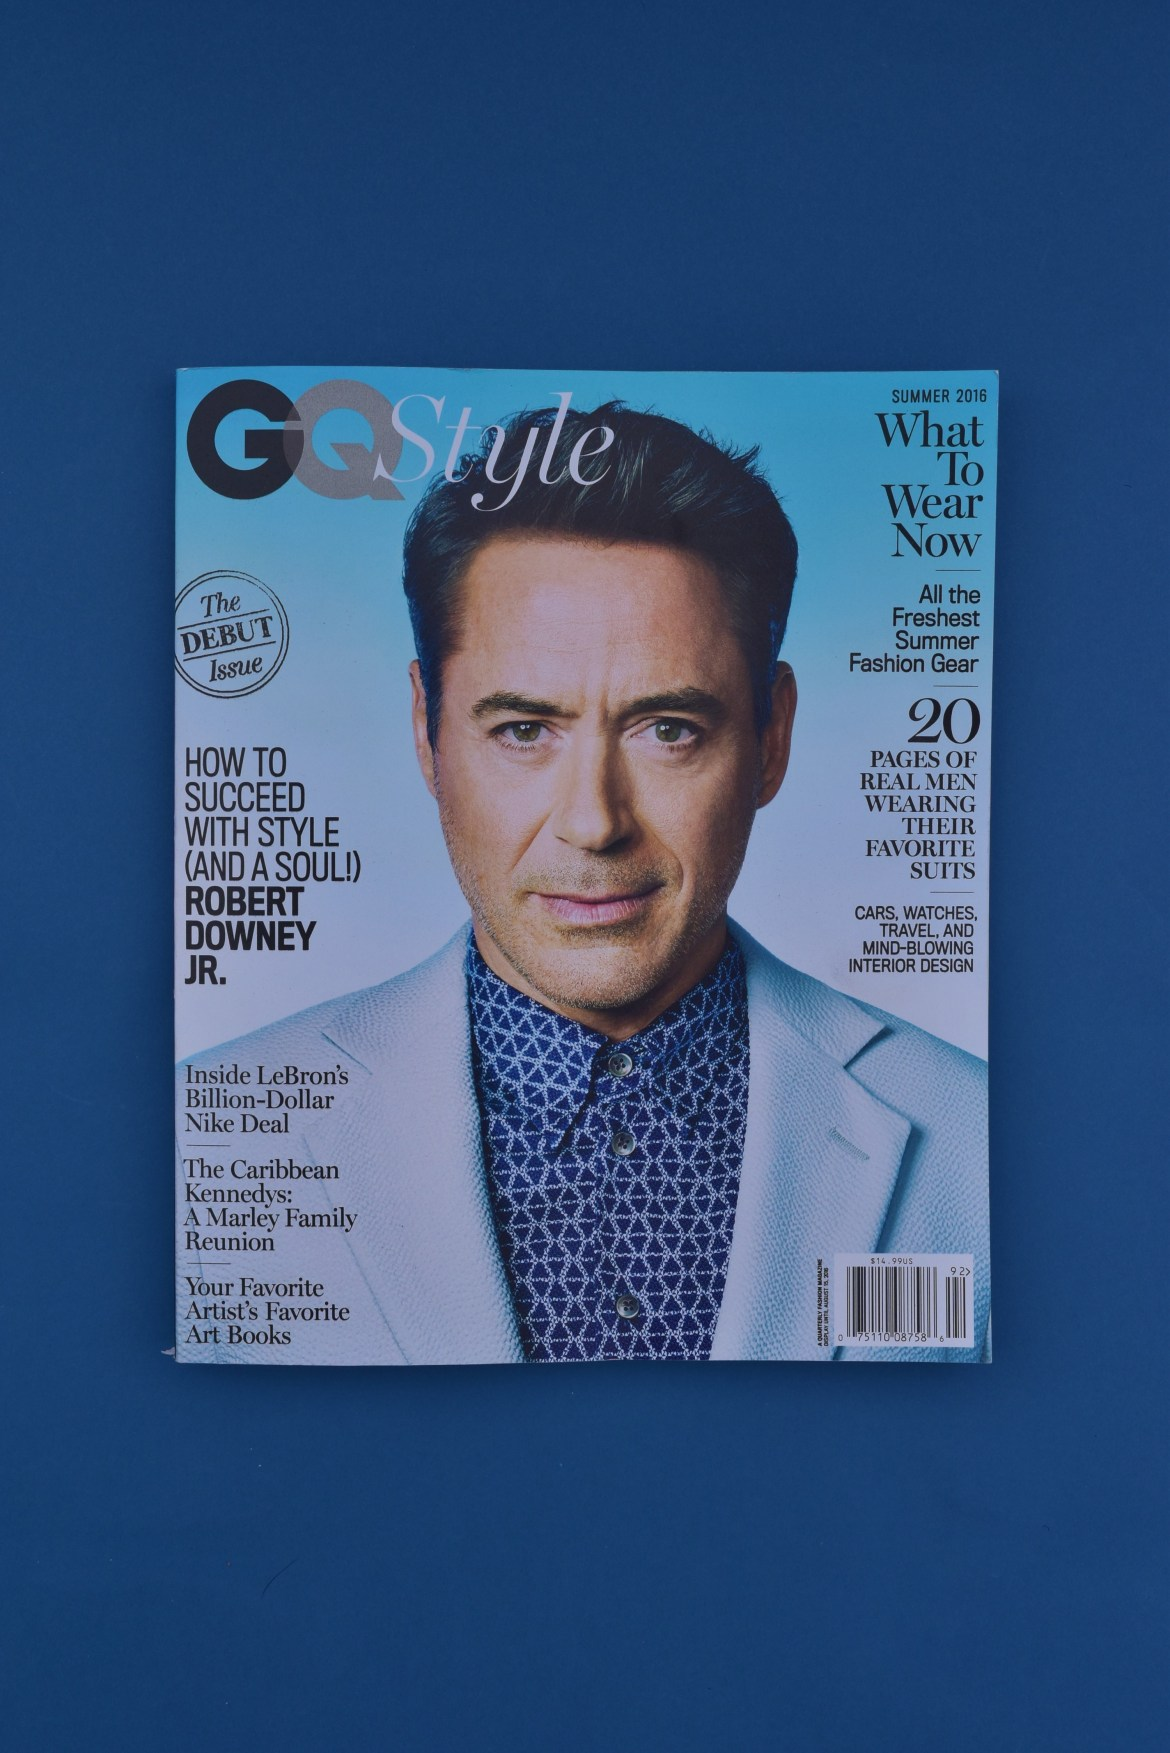 GQ Style Debut Issue with Robert Downey Jr On The Cover